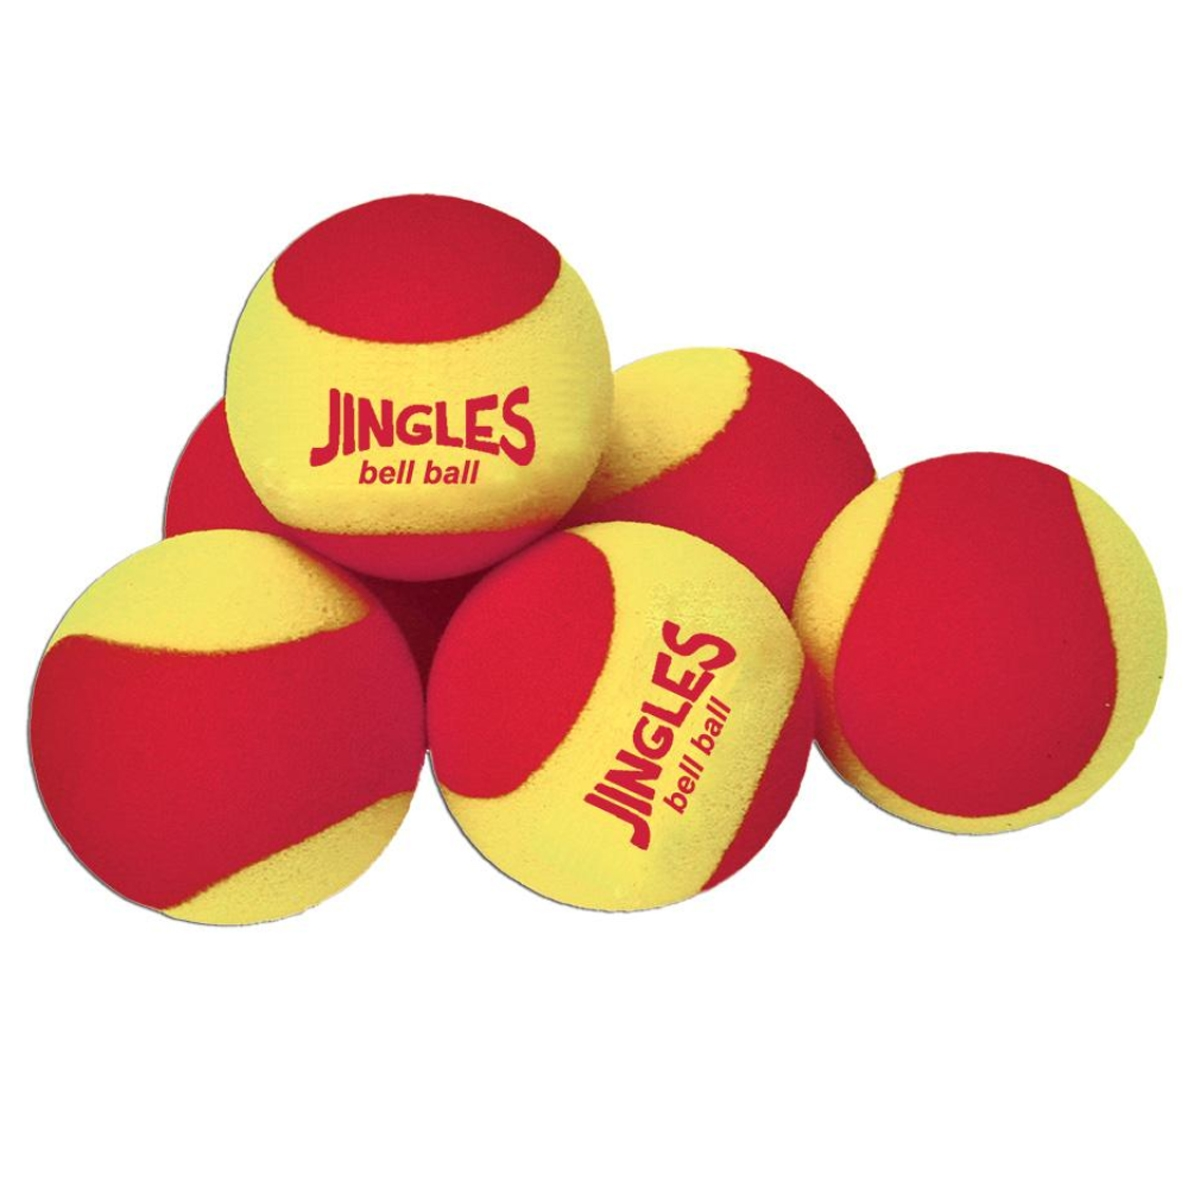 jingles bell ball set of 6 yellow and red tennis balls